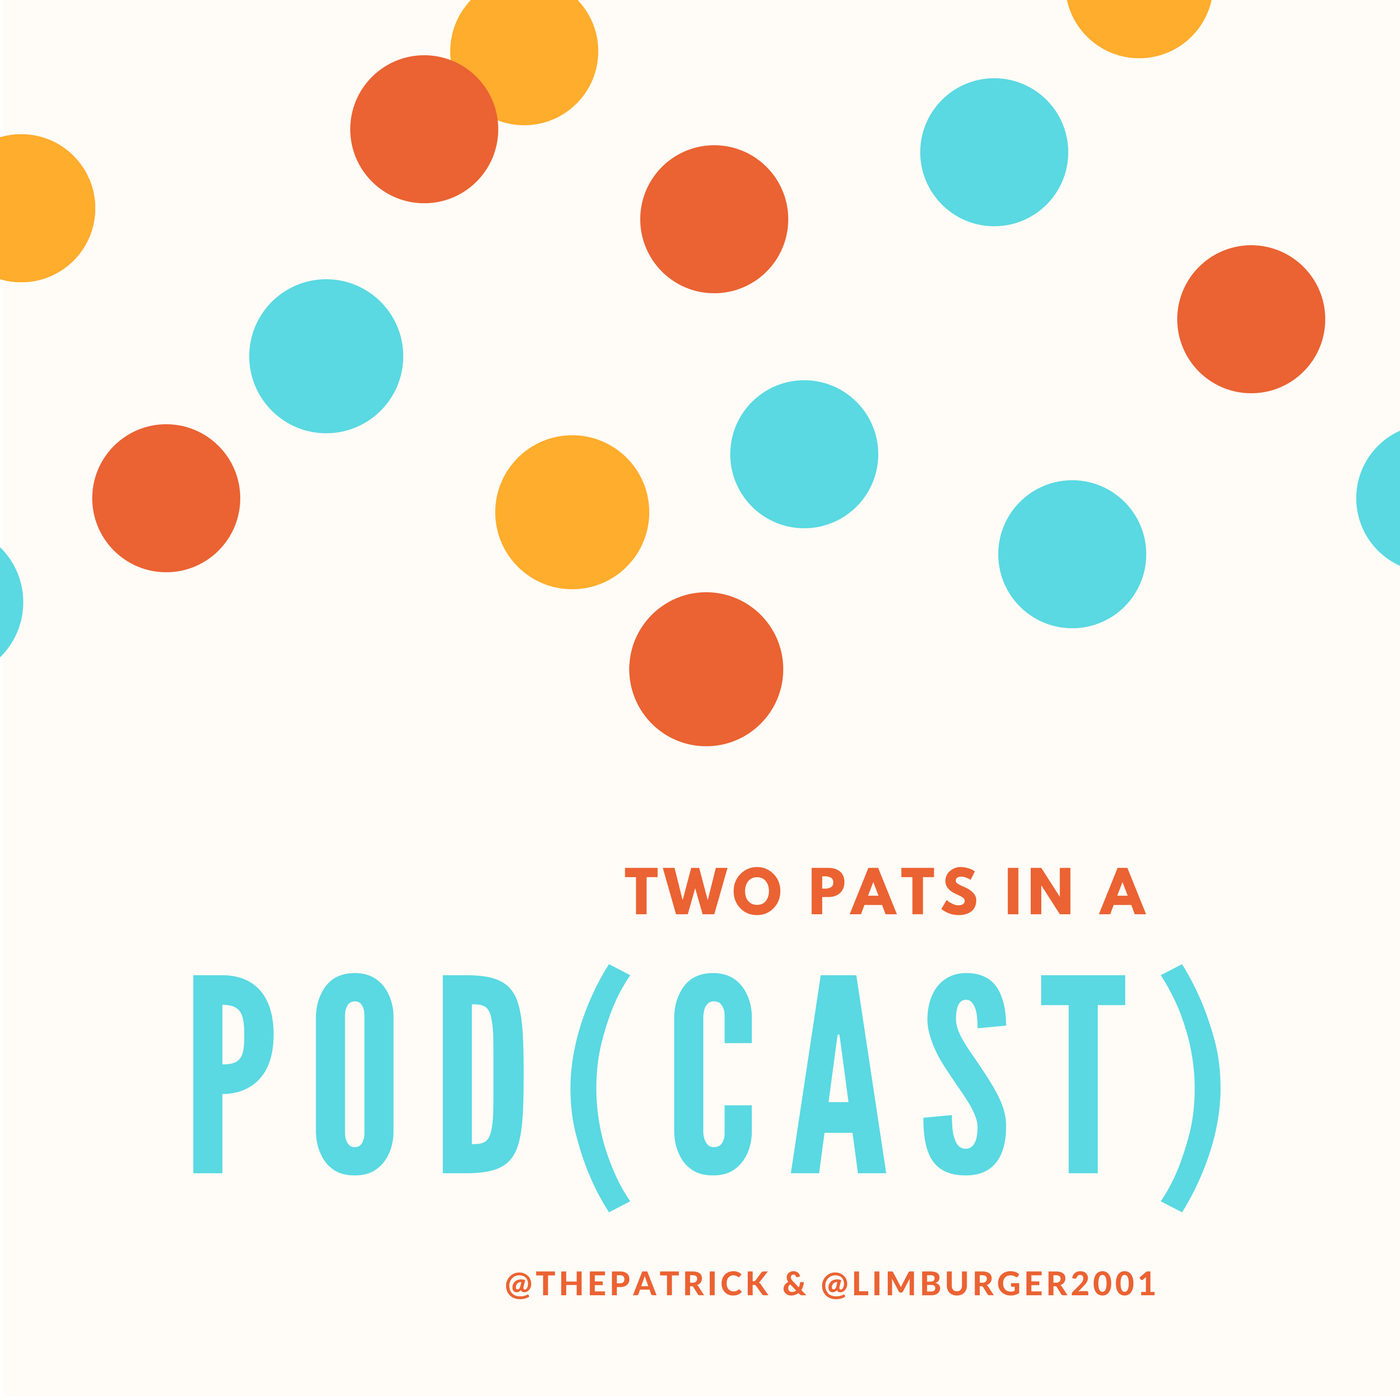 Two Pats in a Pod(cast)